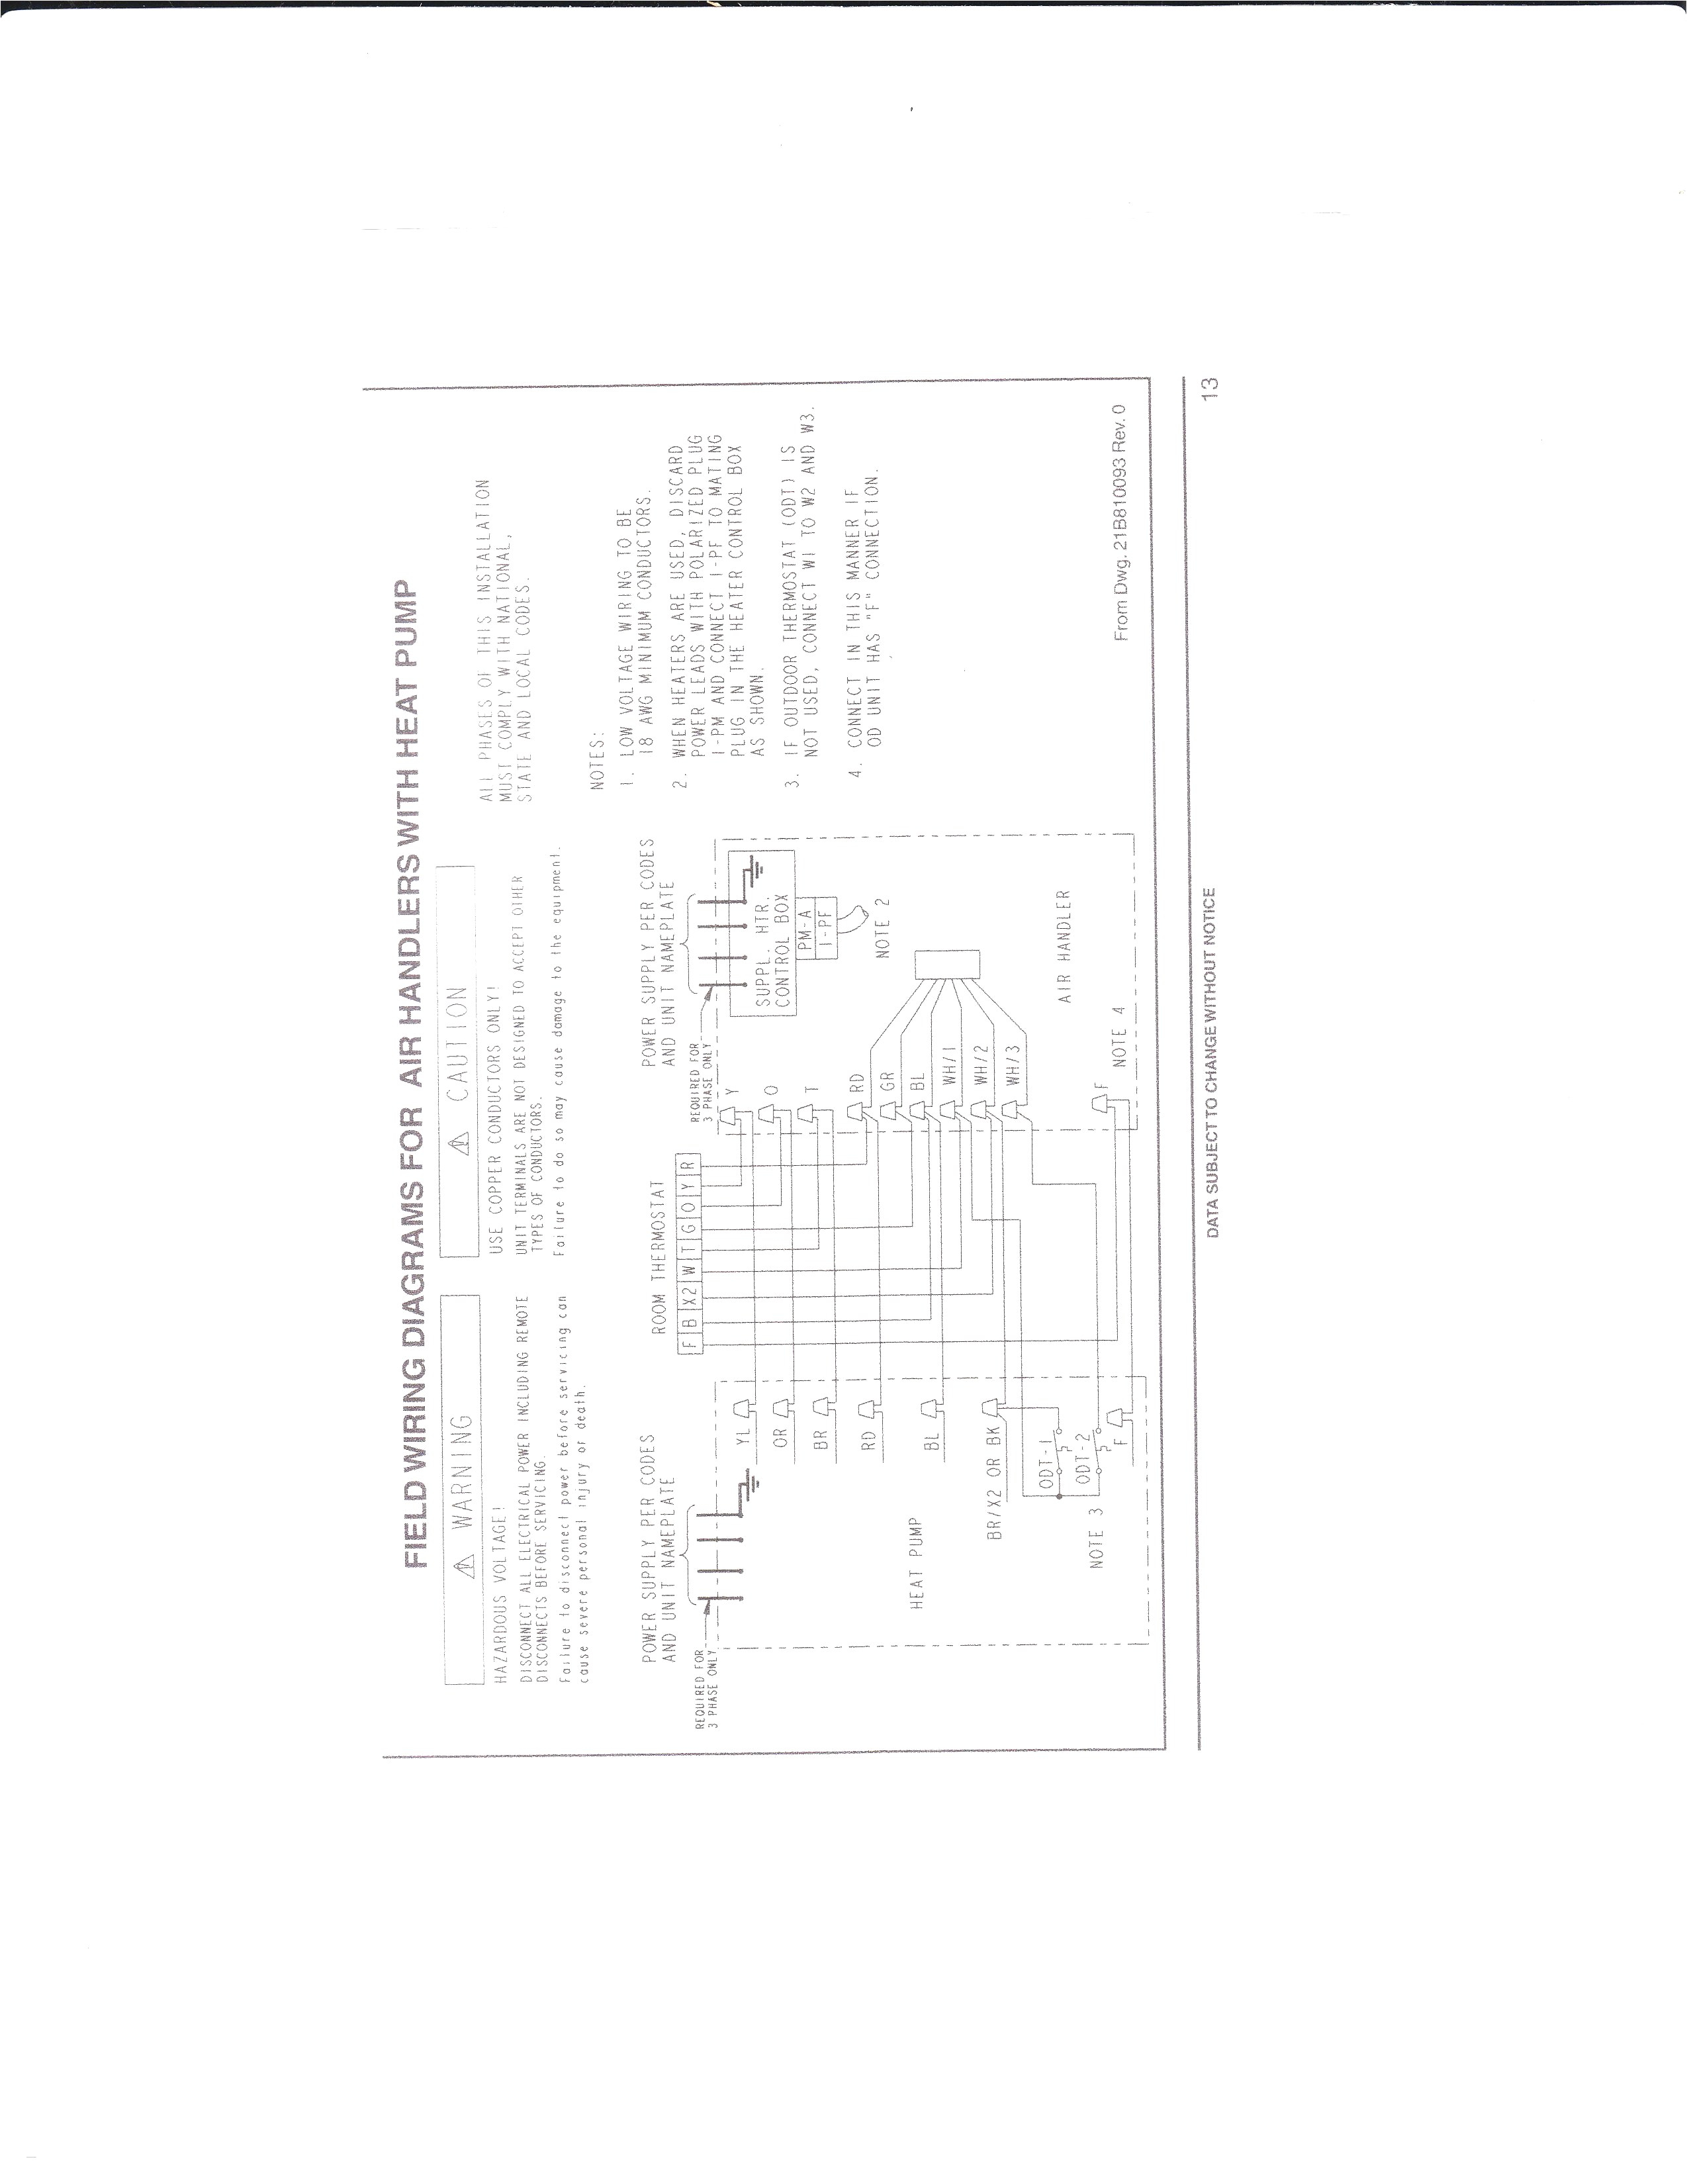 7351 honeywell programmable thermostat wiring diagram wiring 7351 honeywell programmable thermostat wiring diagram